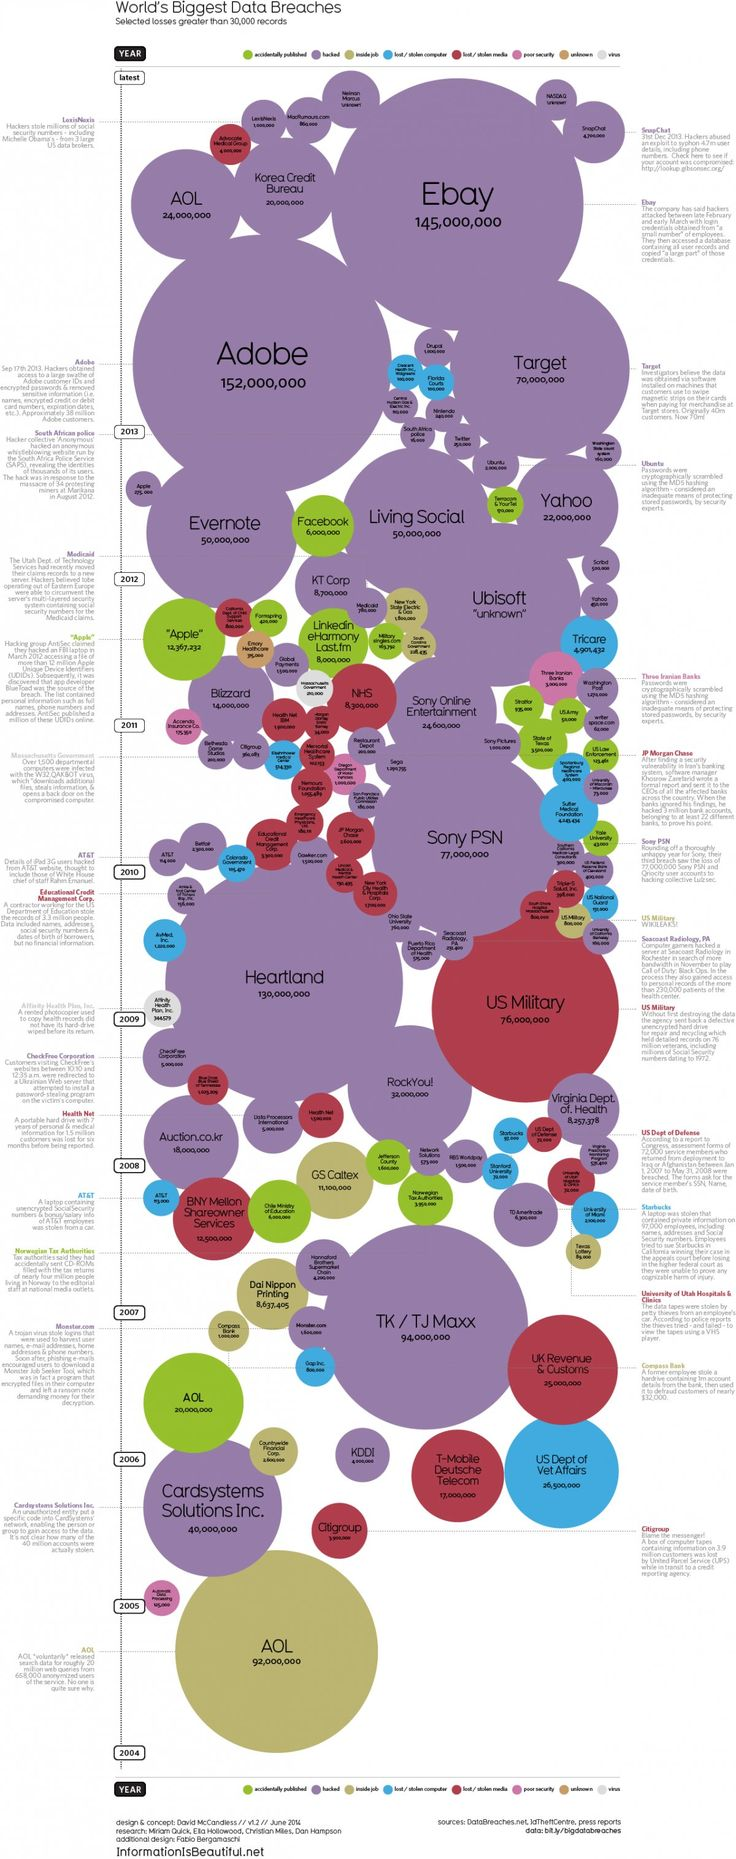 World's Biggest Data Breaches [infographic]